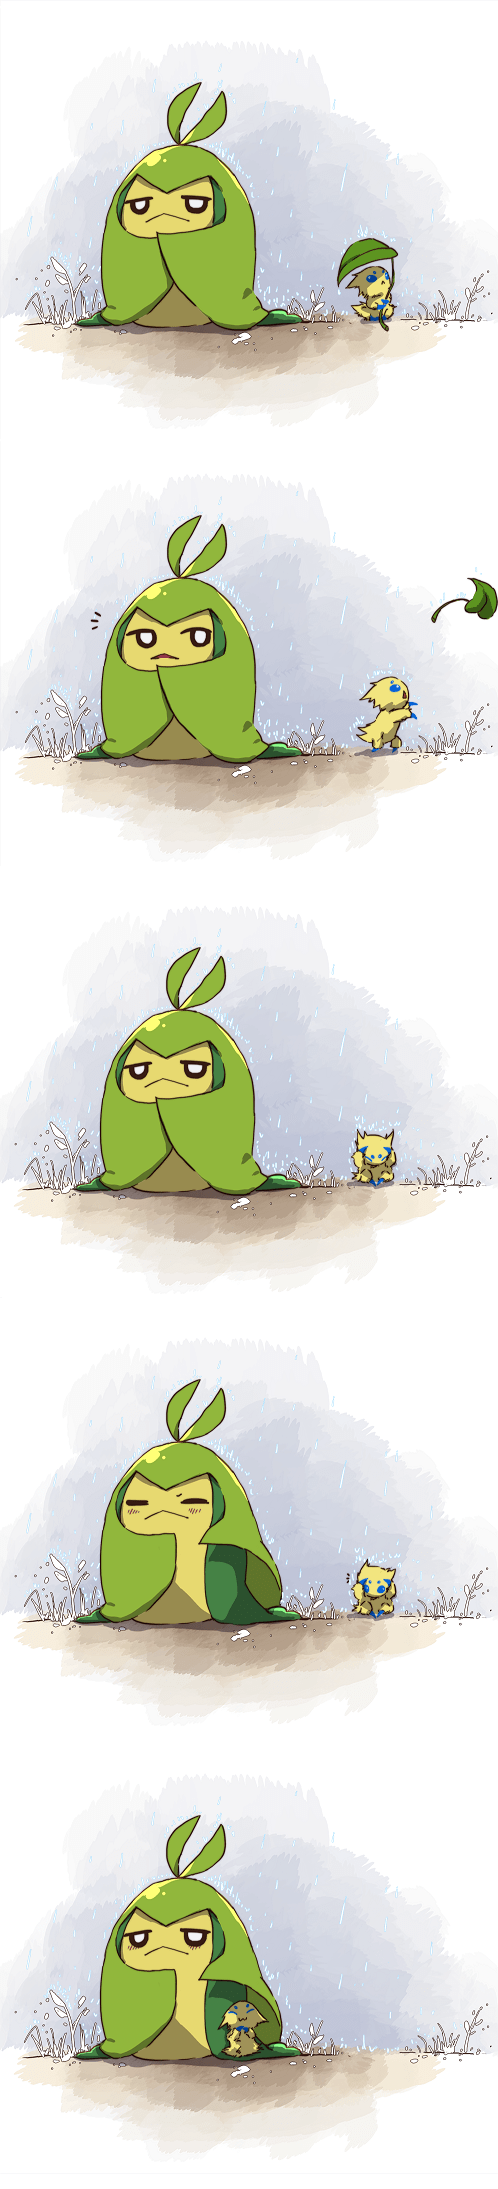 Pokémon art comics dawww joltik swadloon - 7245698048